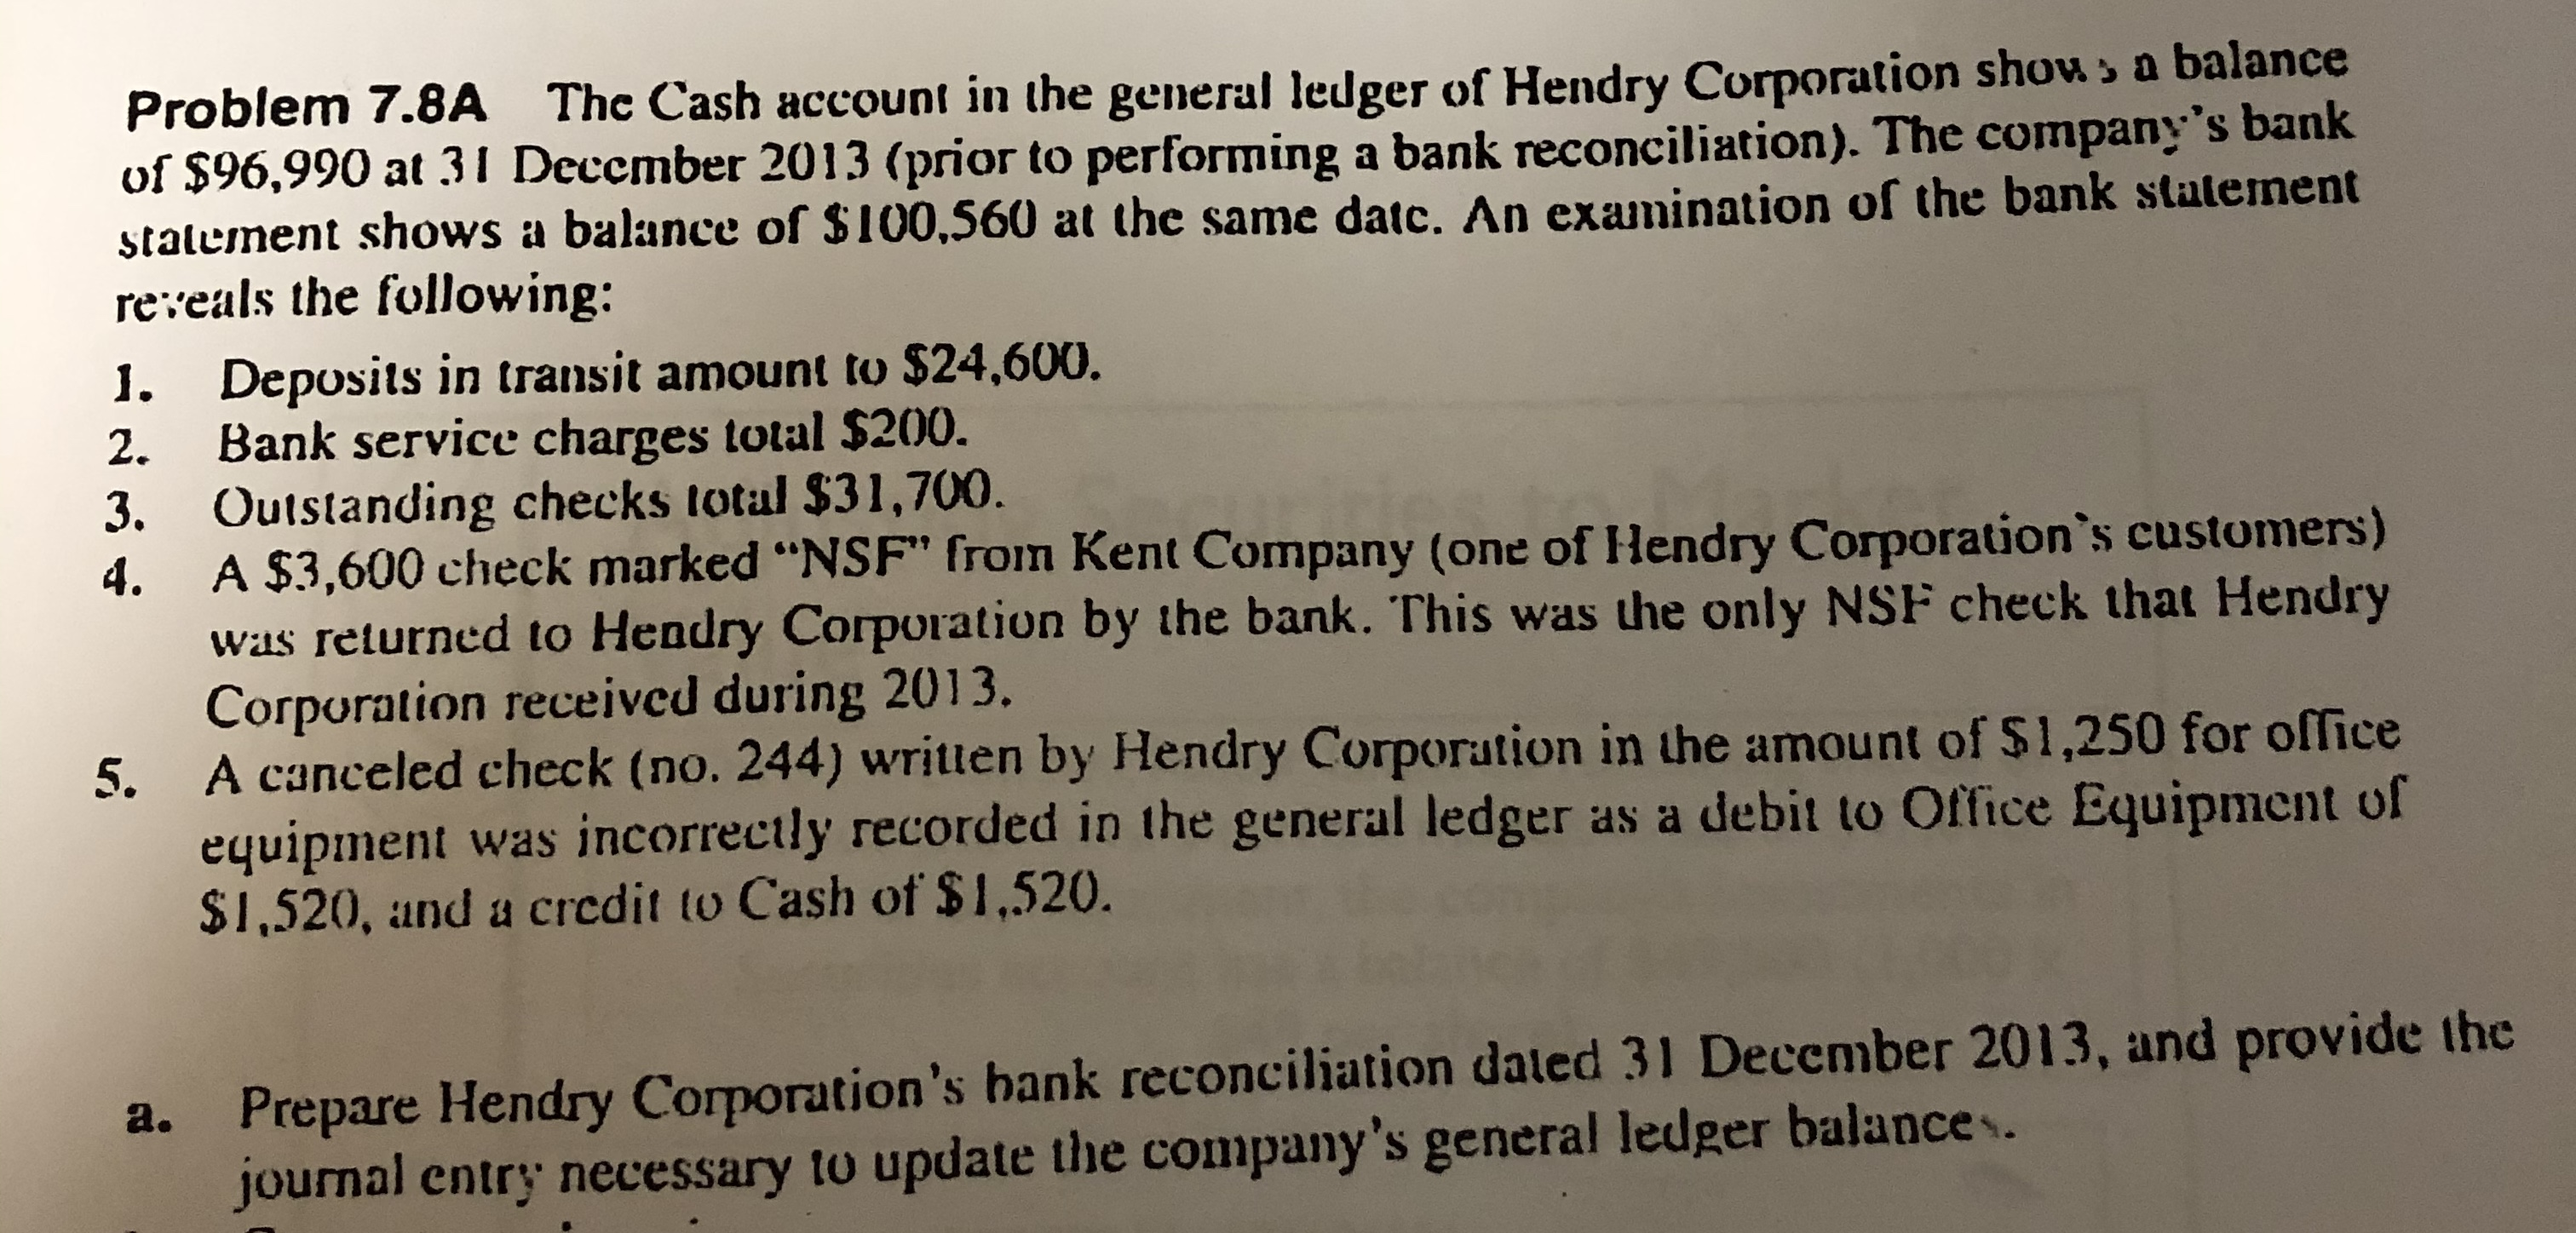 """Problem 7.8A The Cash account in the general ledger of Hendry Corporation show> a balance of $96,990 at 31 December 2013 (prior to performing a bank reconciliation). The company's bank stalement shows a balance of $100,560 at the same datc. An examination of the bank statement reveals the following: 1. Deposits in transit amount to $24,600. Bank service charges total $200. 3. Outstanding checks total $31,700. A $3,600 check marked """"NSF"""" from Kent Company (one of Hendry Corporation*s customers) was returned to Hendry Corporation by the bank. This was the only NSF check that Hendry Corporation received during 2013. A canceled check (no. 244) written by Hendry Corporation in the amount of $1,250 for office equipment was incorrectly recorded in the general ledger as a debit to Office Equipment of $1,520, and a credit to Cash of $1,520. 2. 4. 5. Prepare Hendry Corporation's bank reconciliation daled 31 December 2013, and provide the journal entry necessary to update the company's general ledger balances. a."""